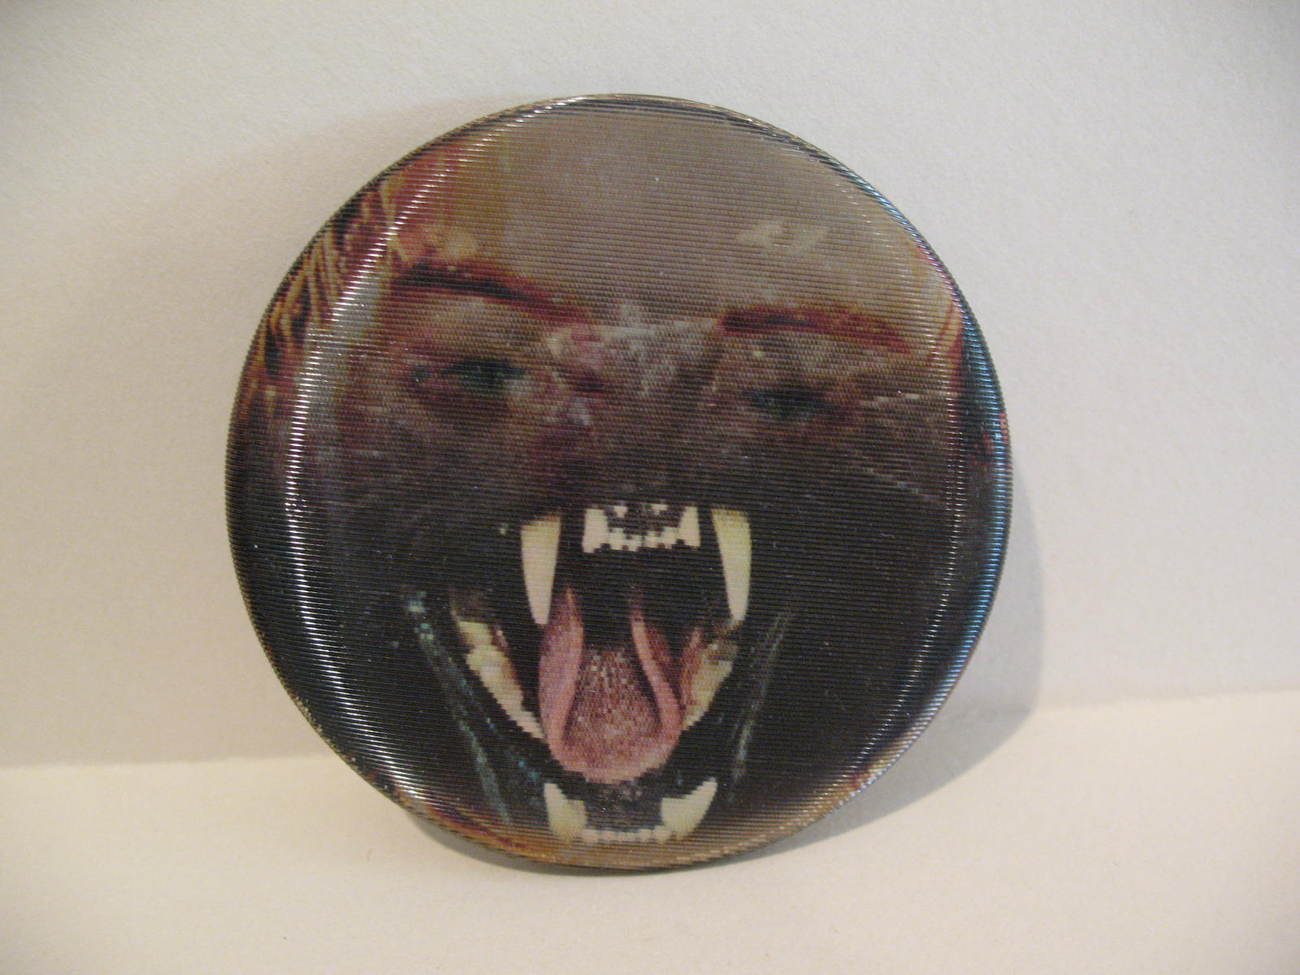 Primary image for American Werewolf In London Pinback Button Lapel Pin